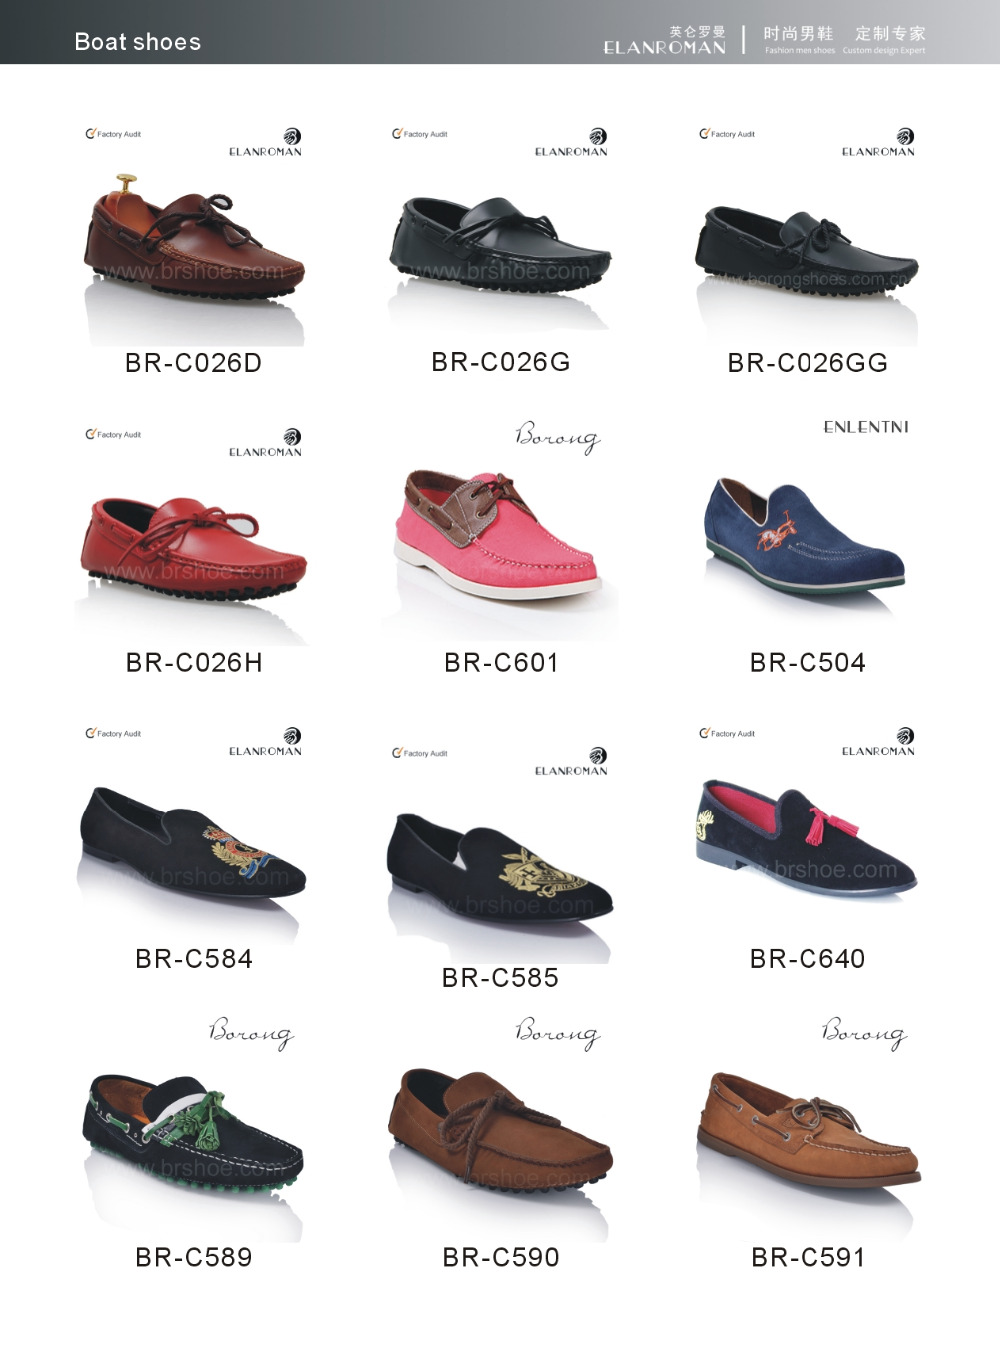 Shoe brands names